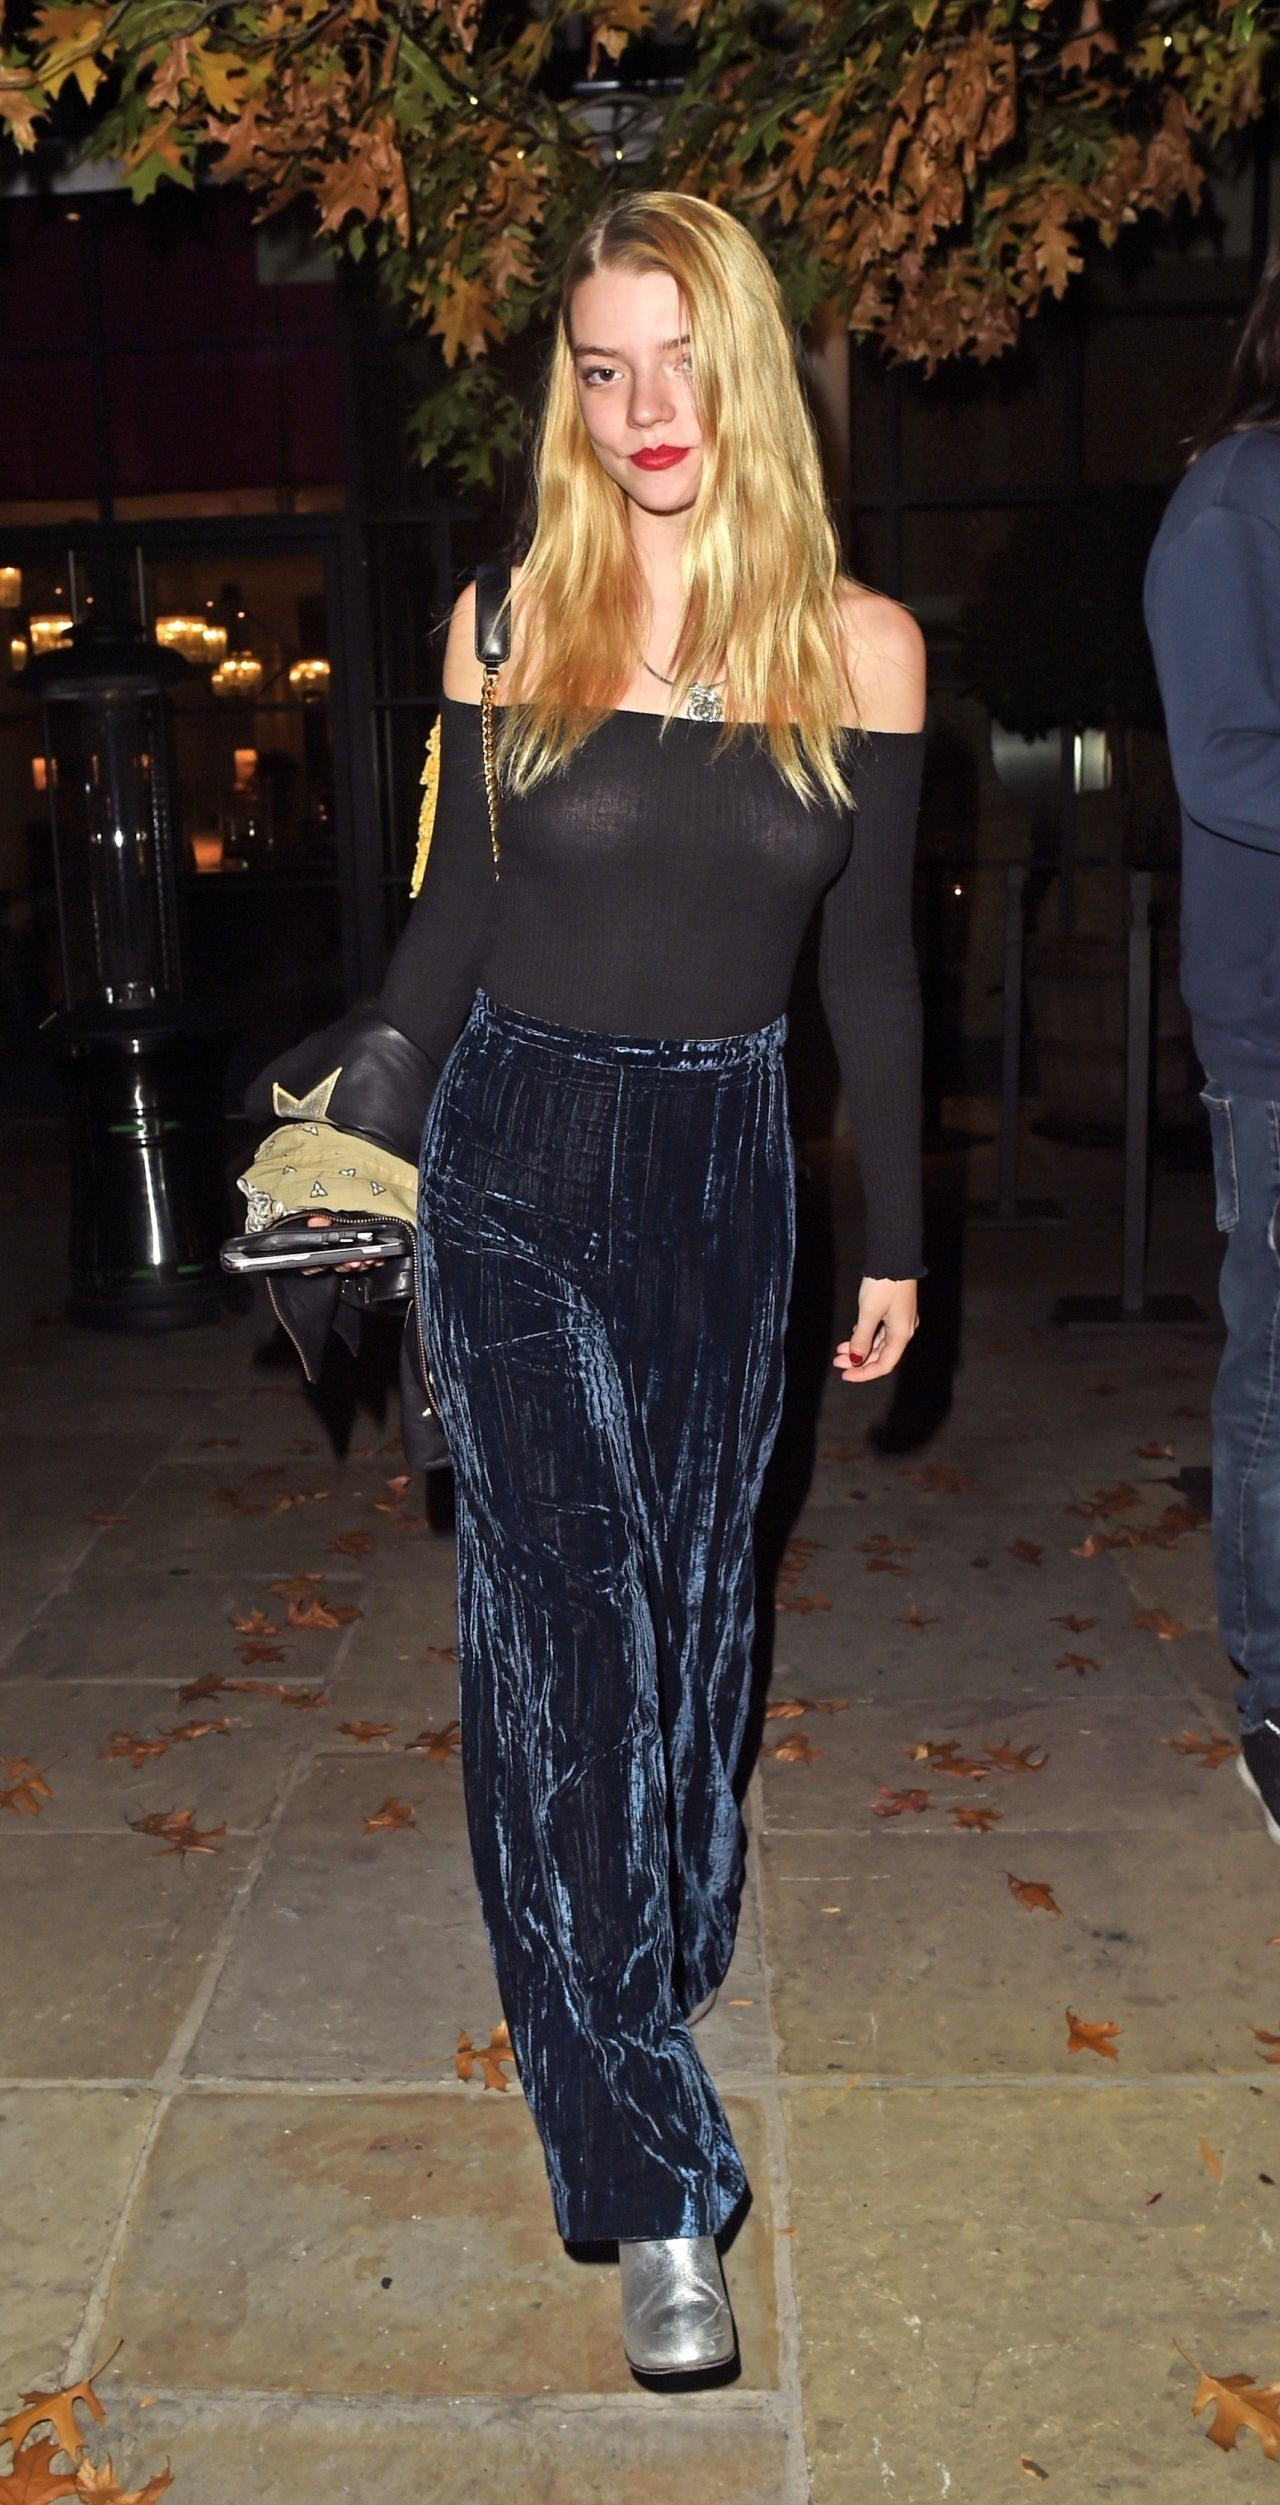 Anya Taylor-Joy – Leaving the Chiltern Firehouse in London 2018